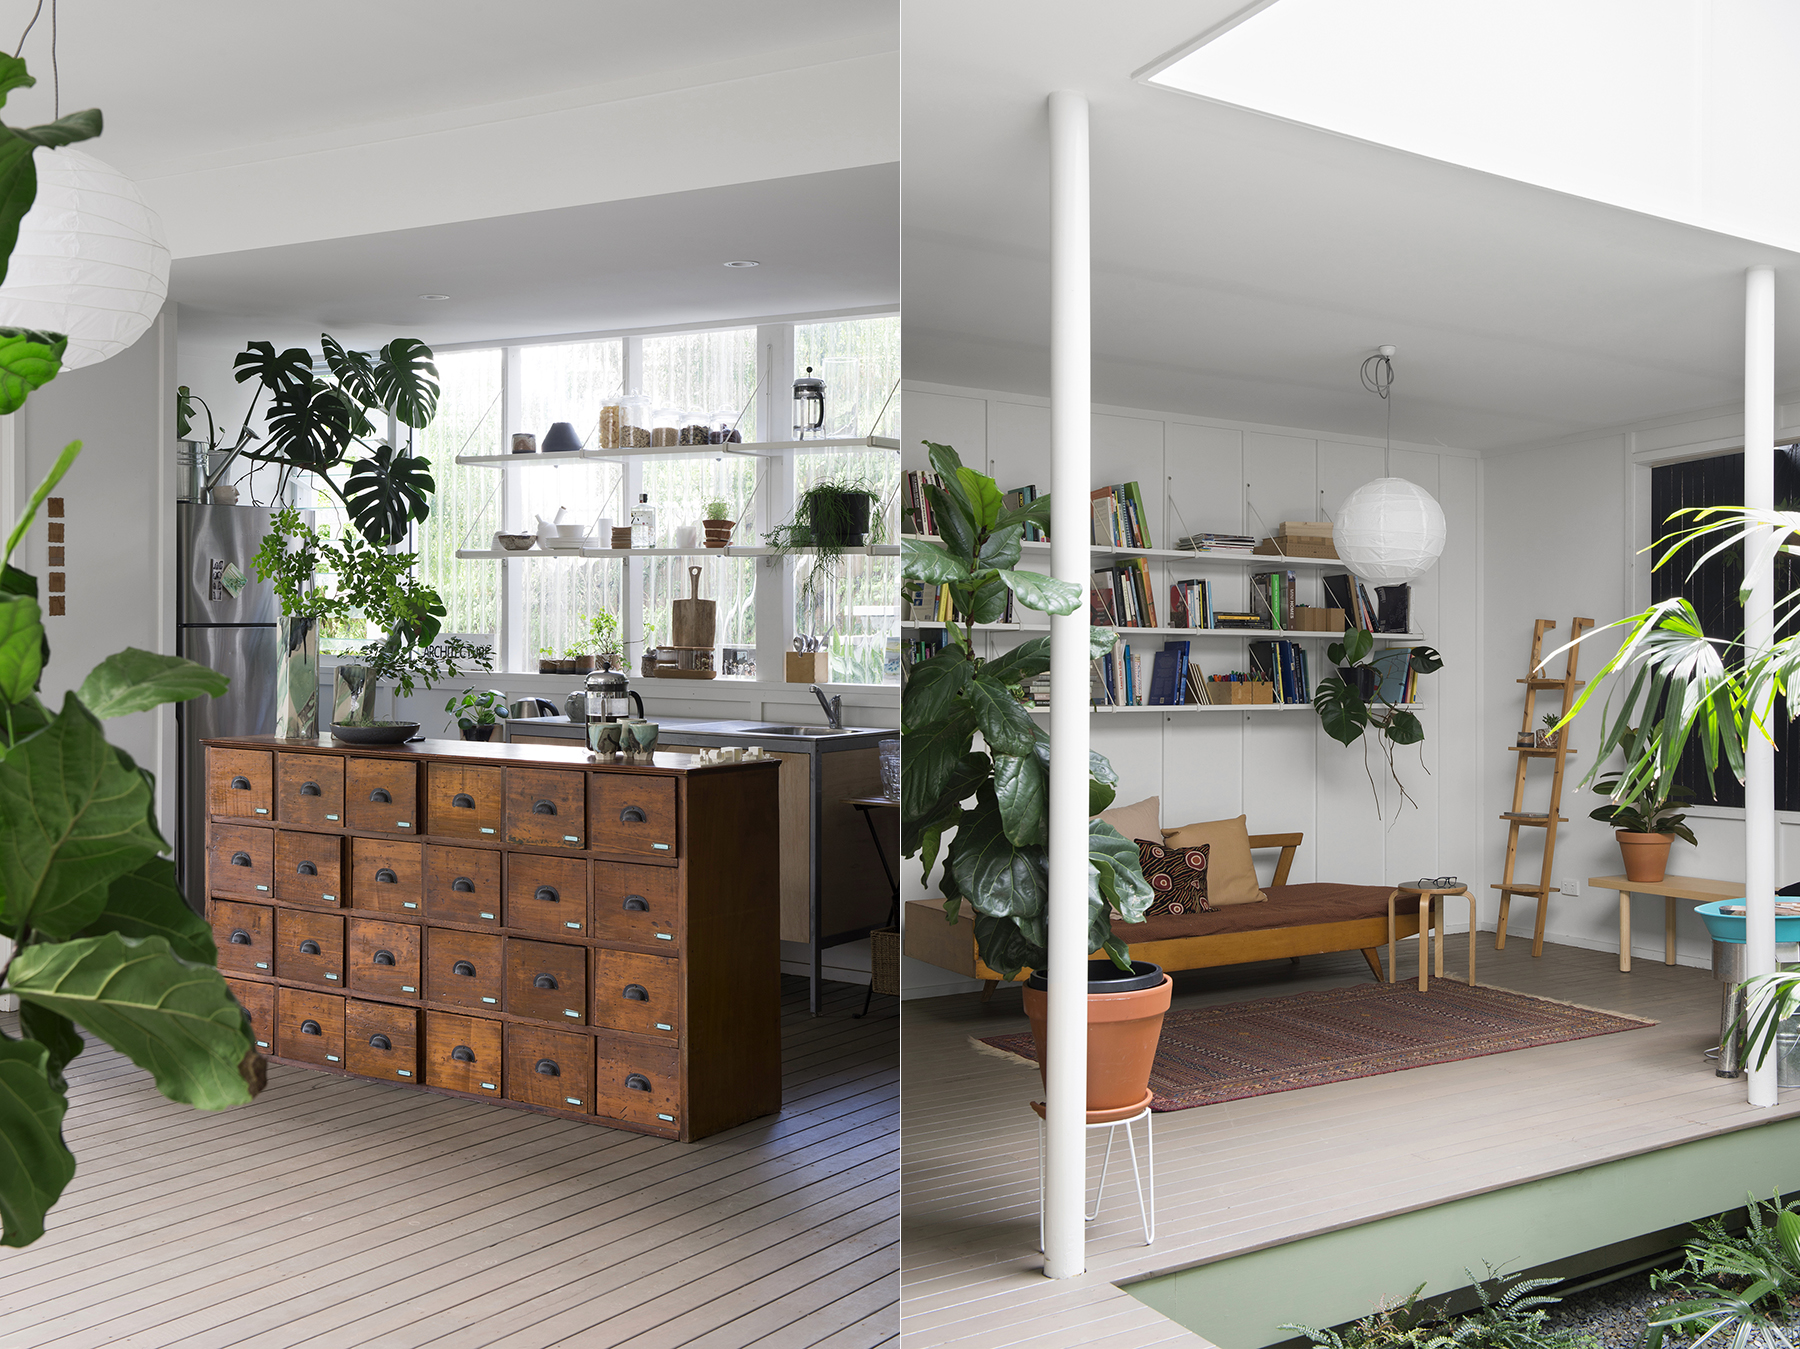 LEFT: The kitchen replete with vintage timber filing drawers repurposed as a kitchen island. RIGHT: The library and daybed area, perfect for a cuppa, a chat, or some reading. Suzie also sometimes uses it as a throwing area as she is a budding potter as well.